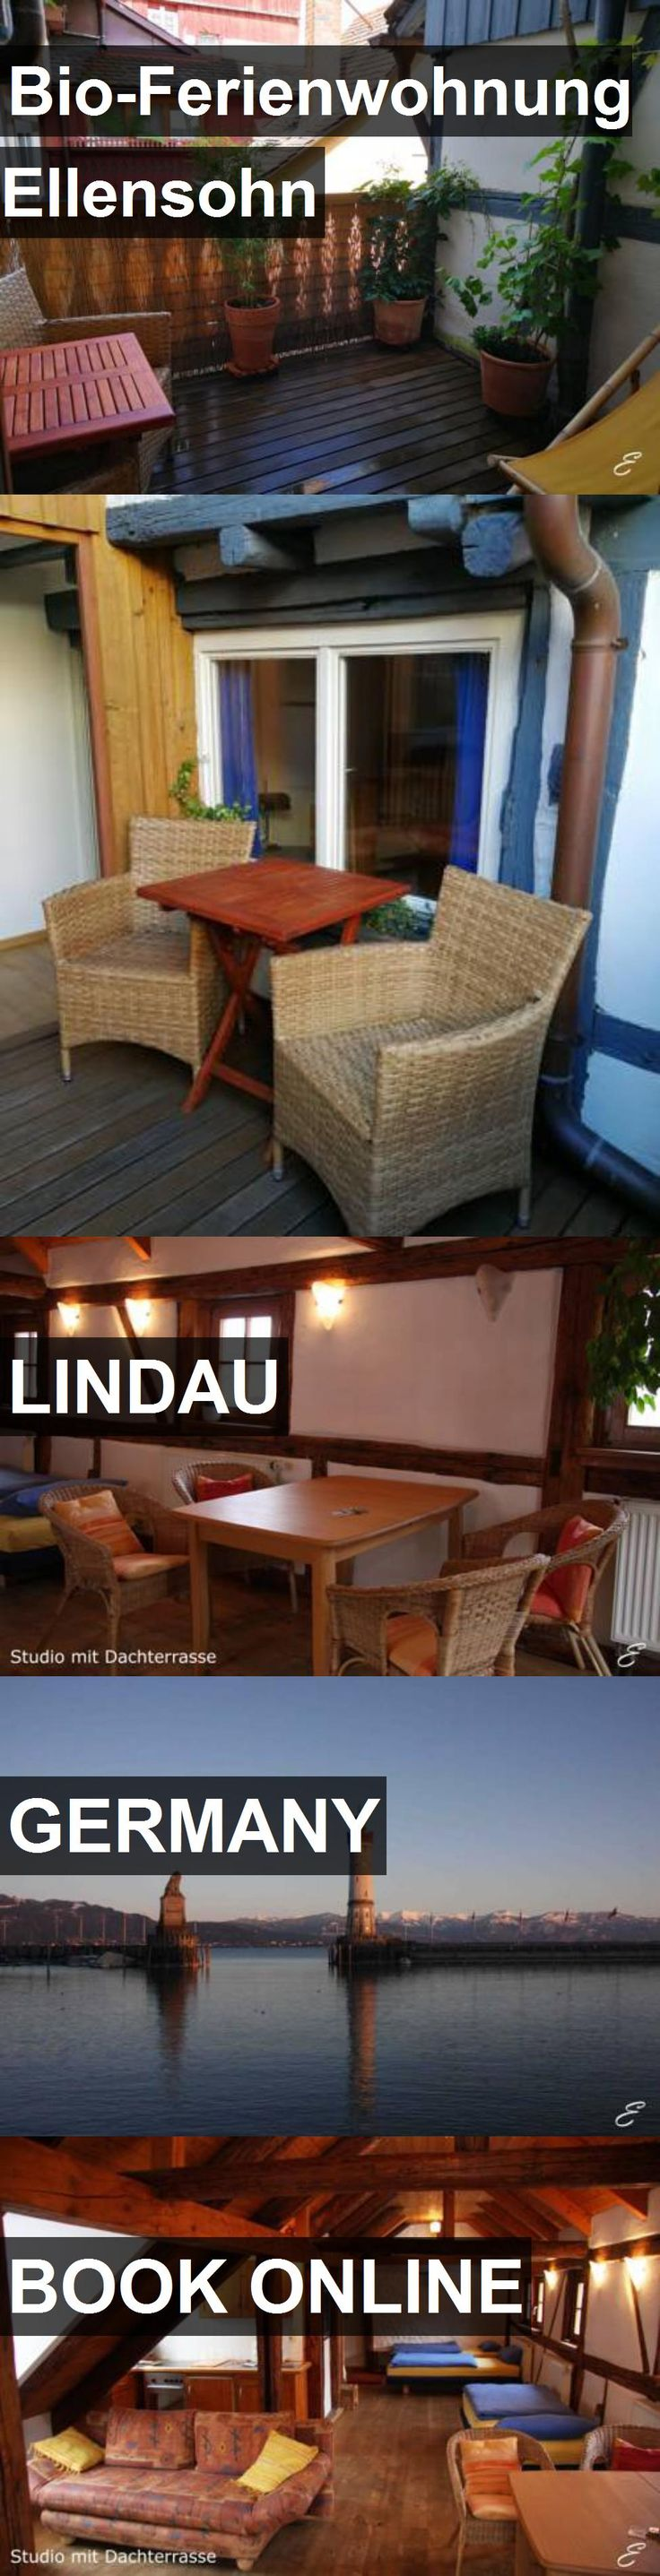 Hotel Bio-Ferienwohnung Ellensohn in Lindau, Germany. For more information, photos, reviews and best prices please follow the link. #Germany #Lindau #travel #vacation #hotel